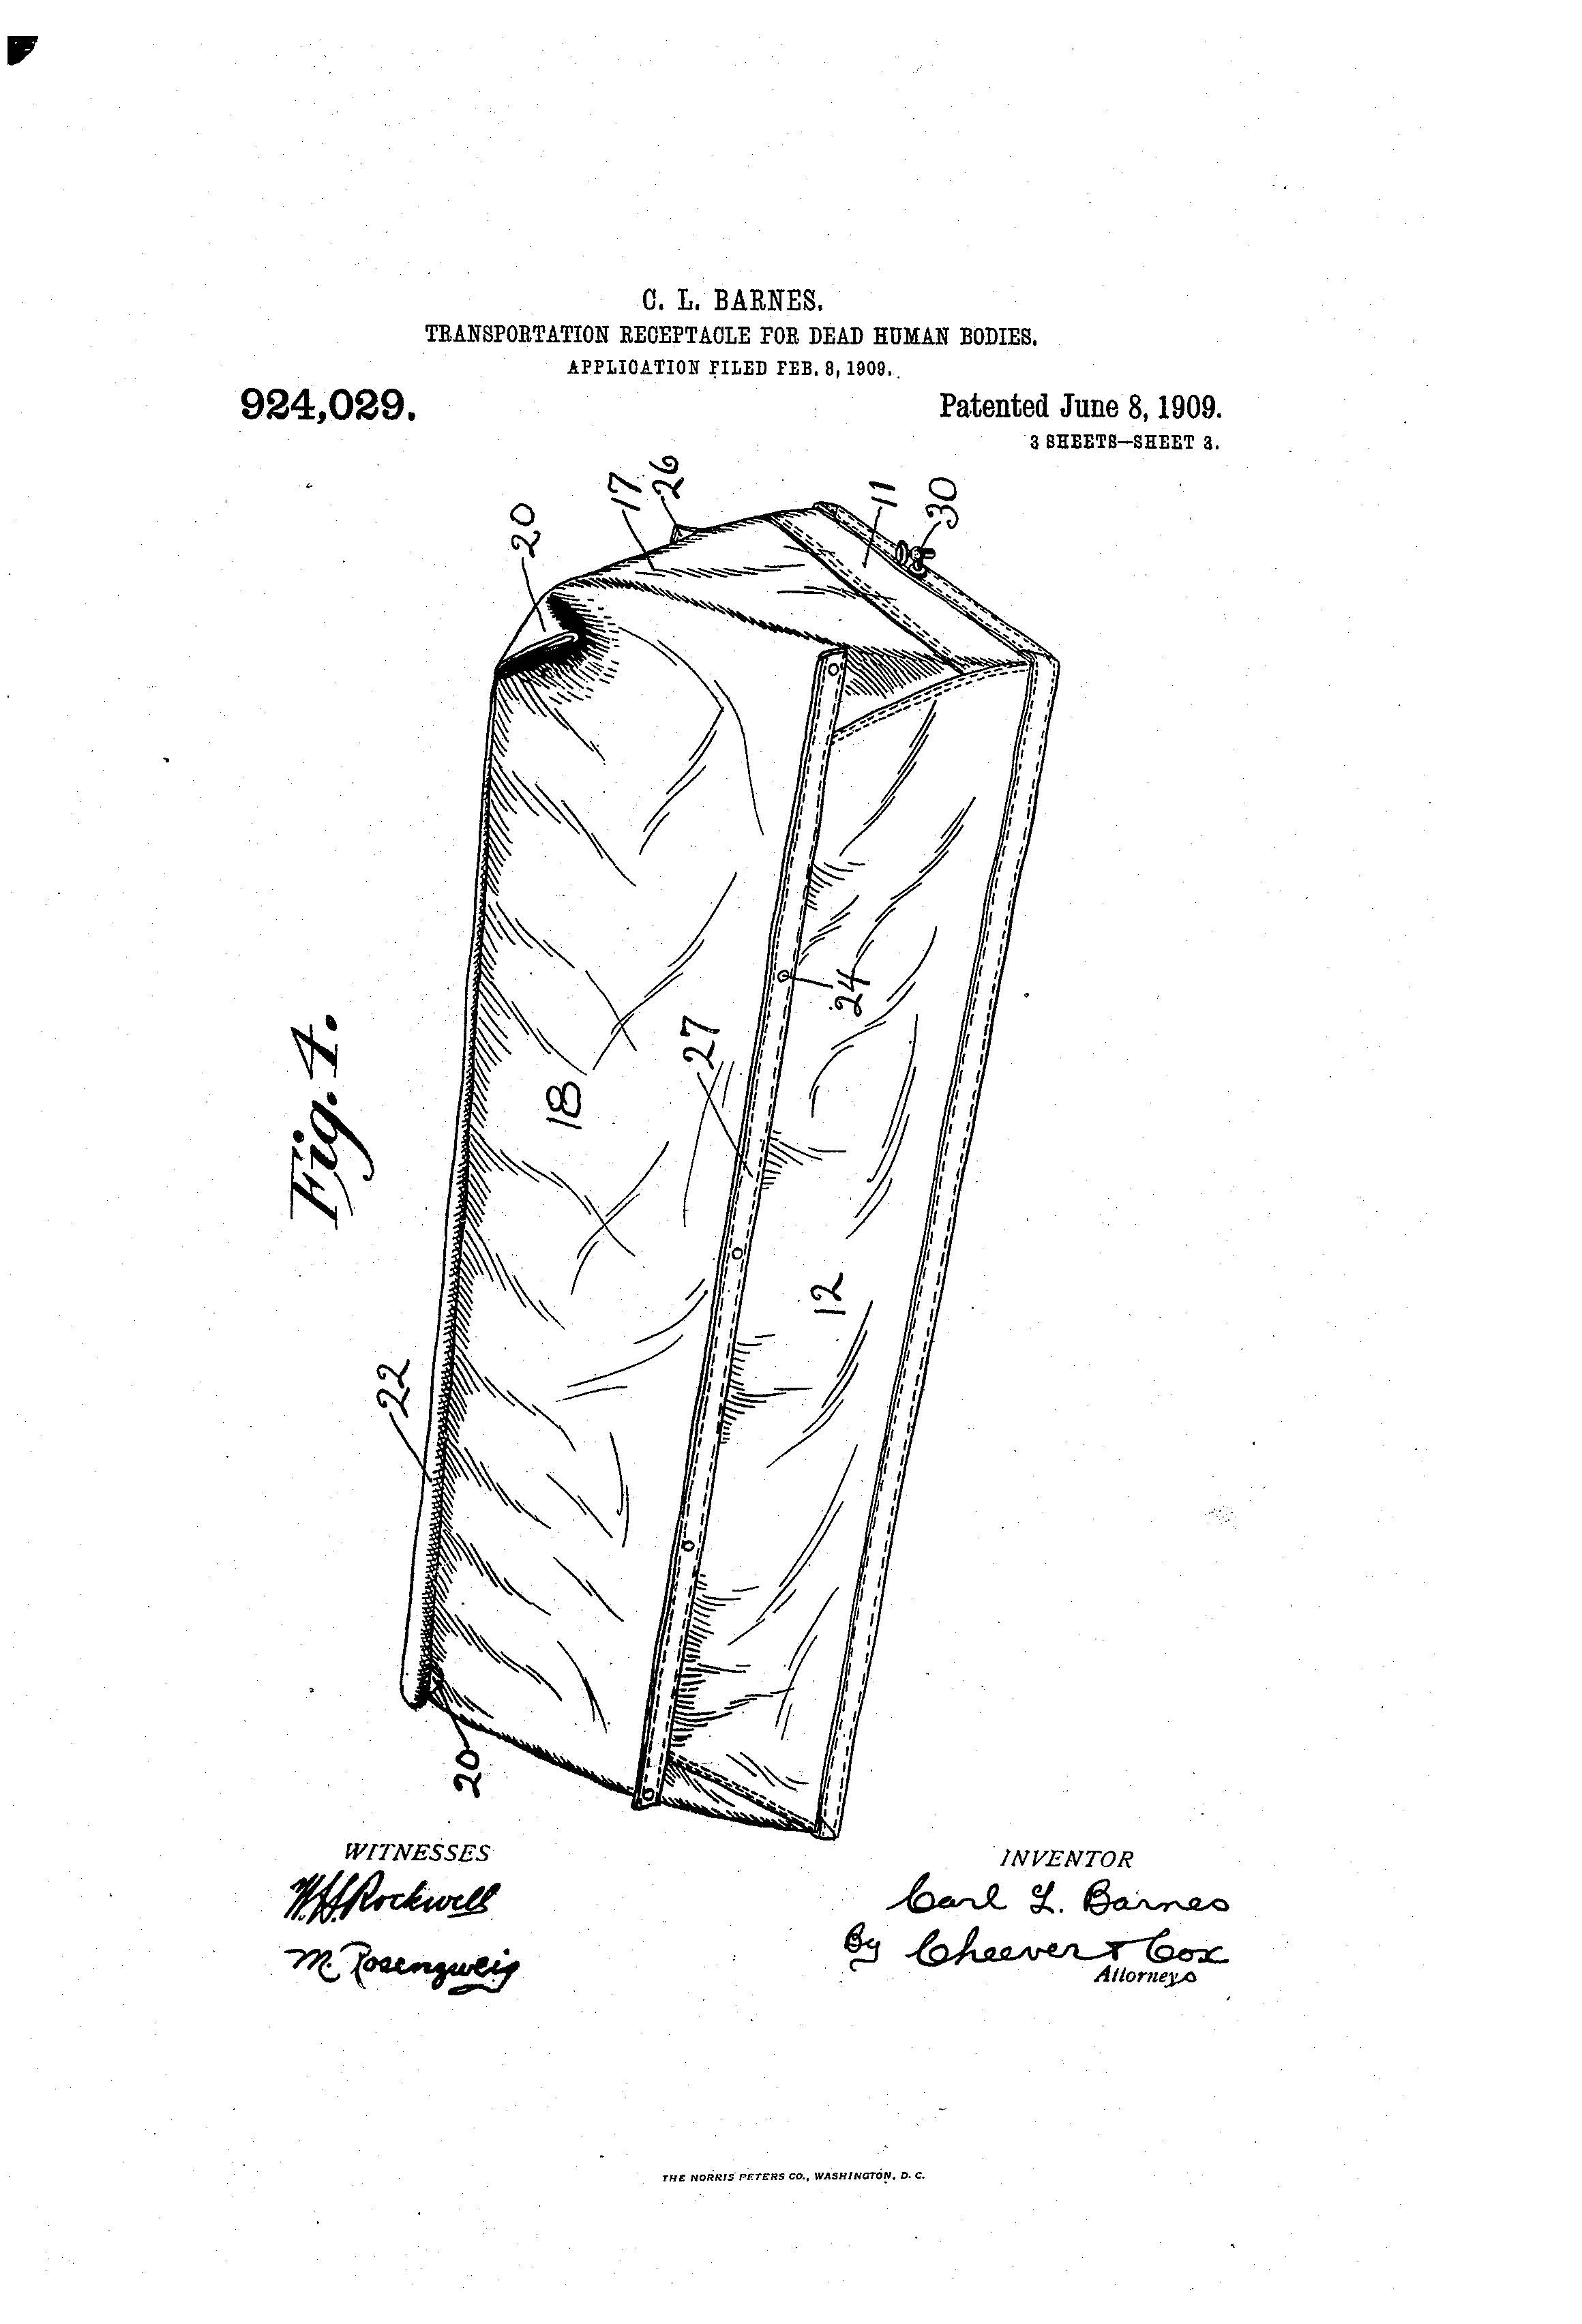 Patent of the Day: Transportation Receptacle for Dead